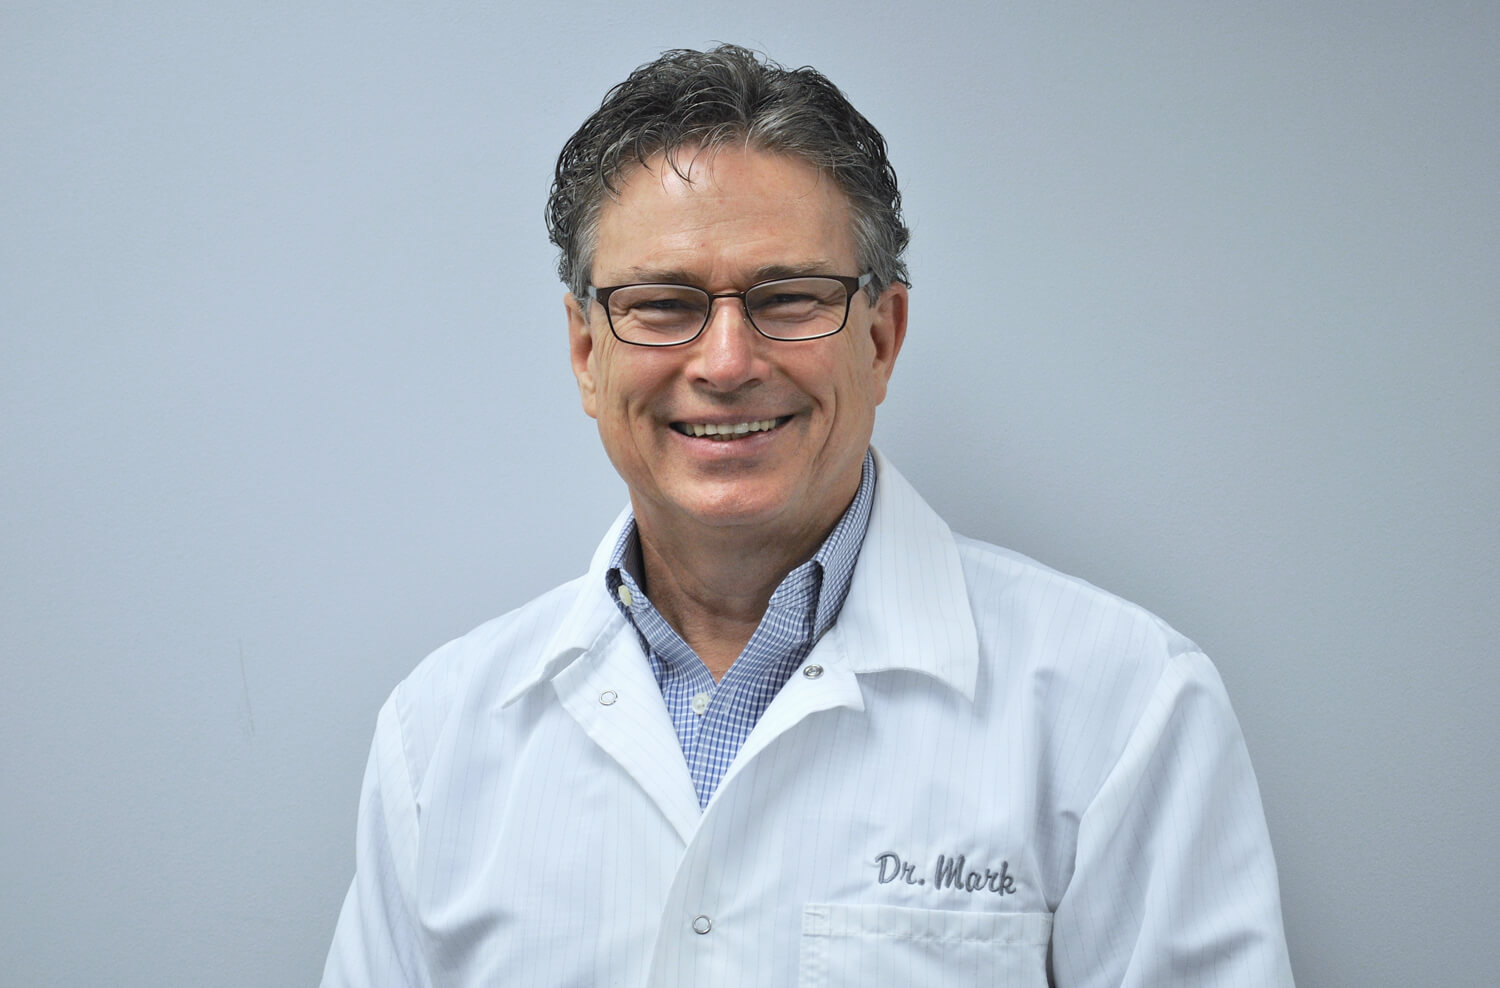 Dr. Mark Teach, DDS